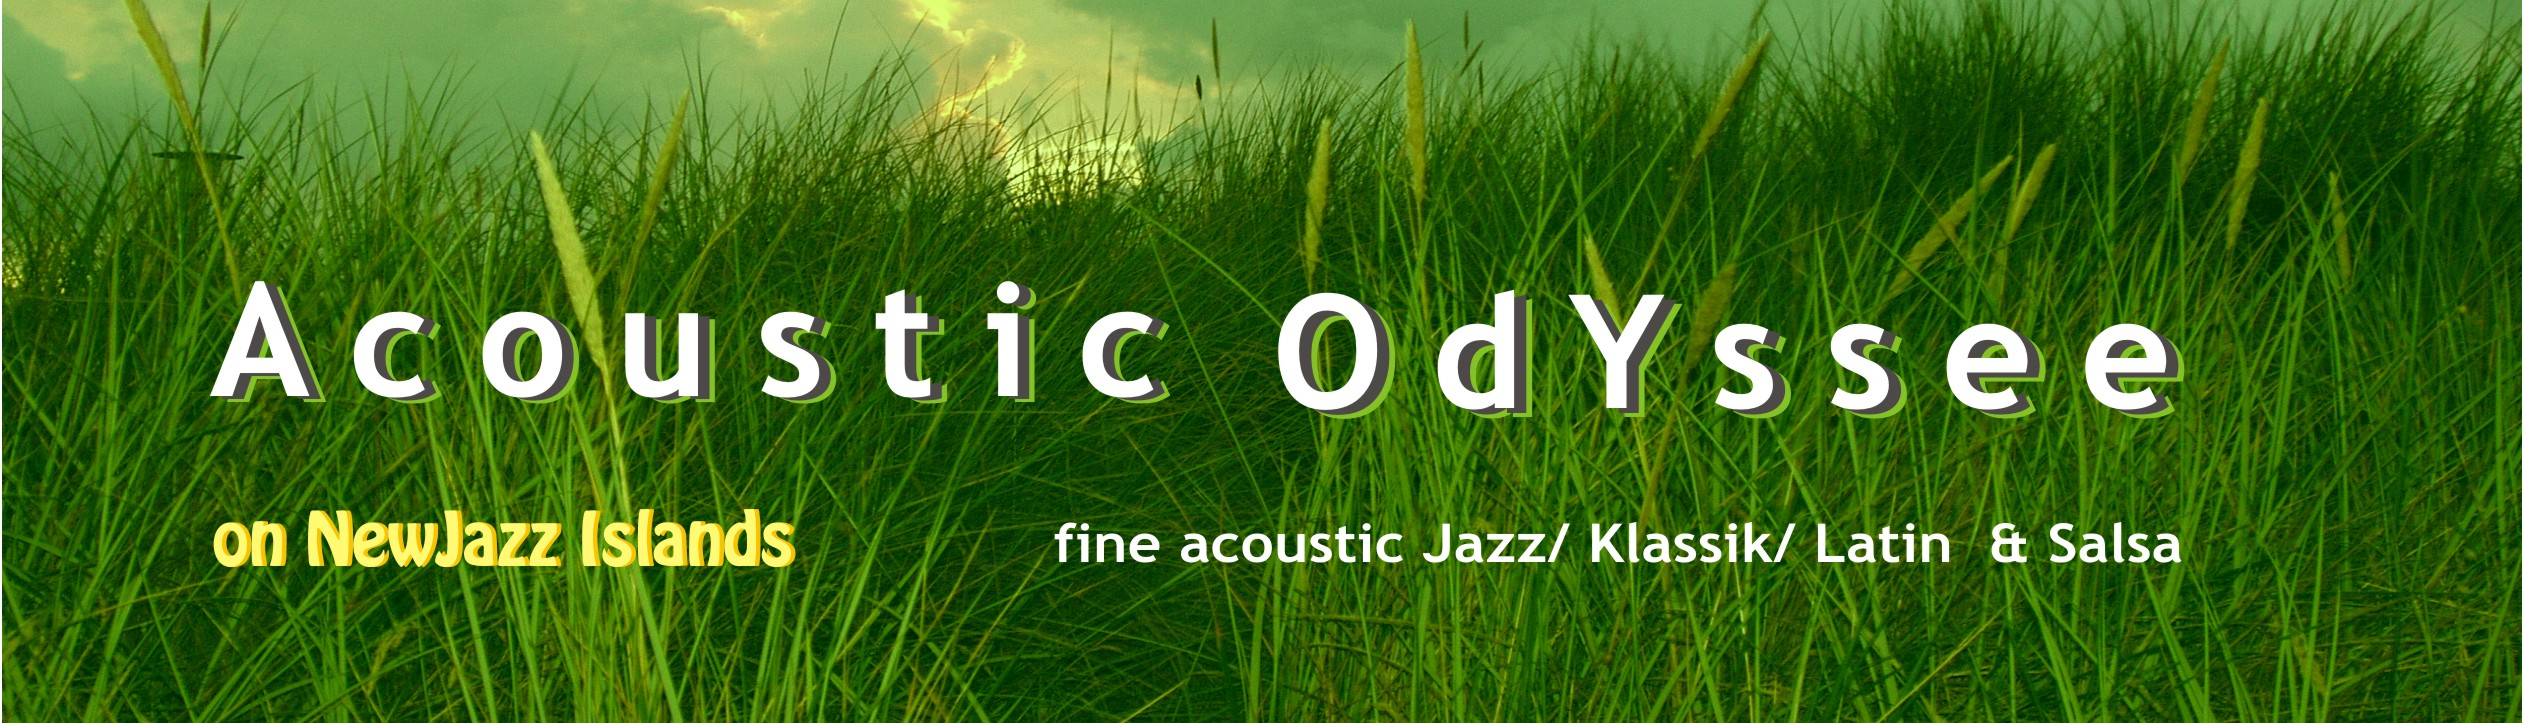 acoustic odyssee